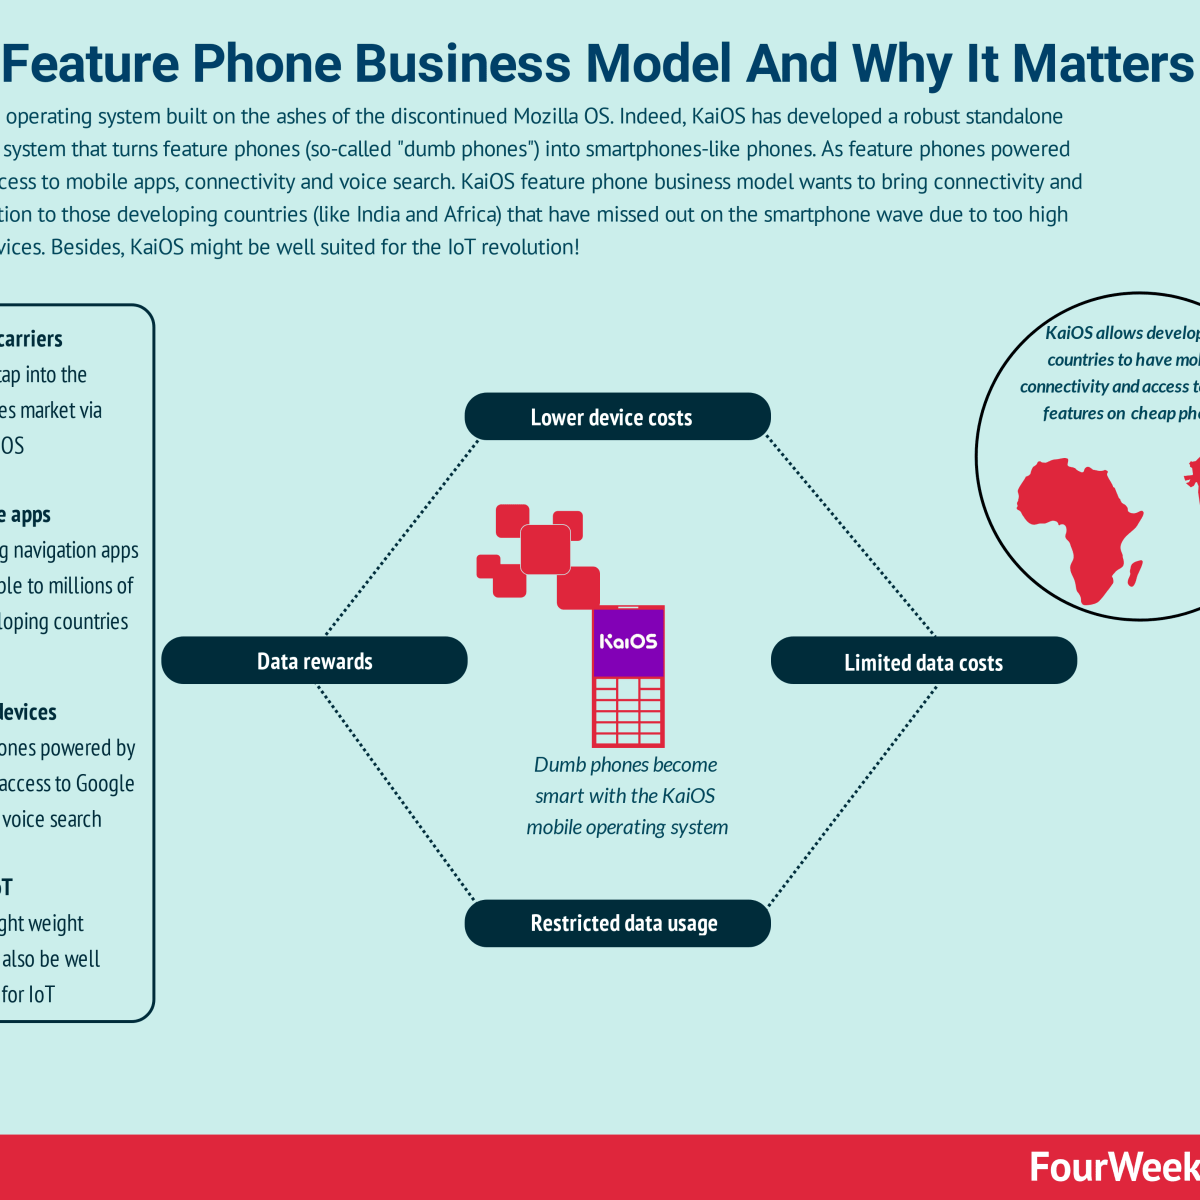 KaiOS Feature Phone Business Model And Why It Matters So